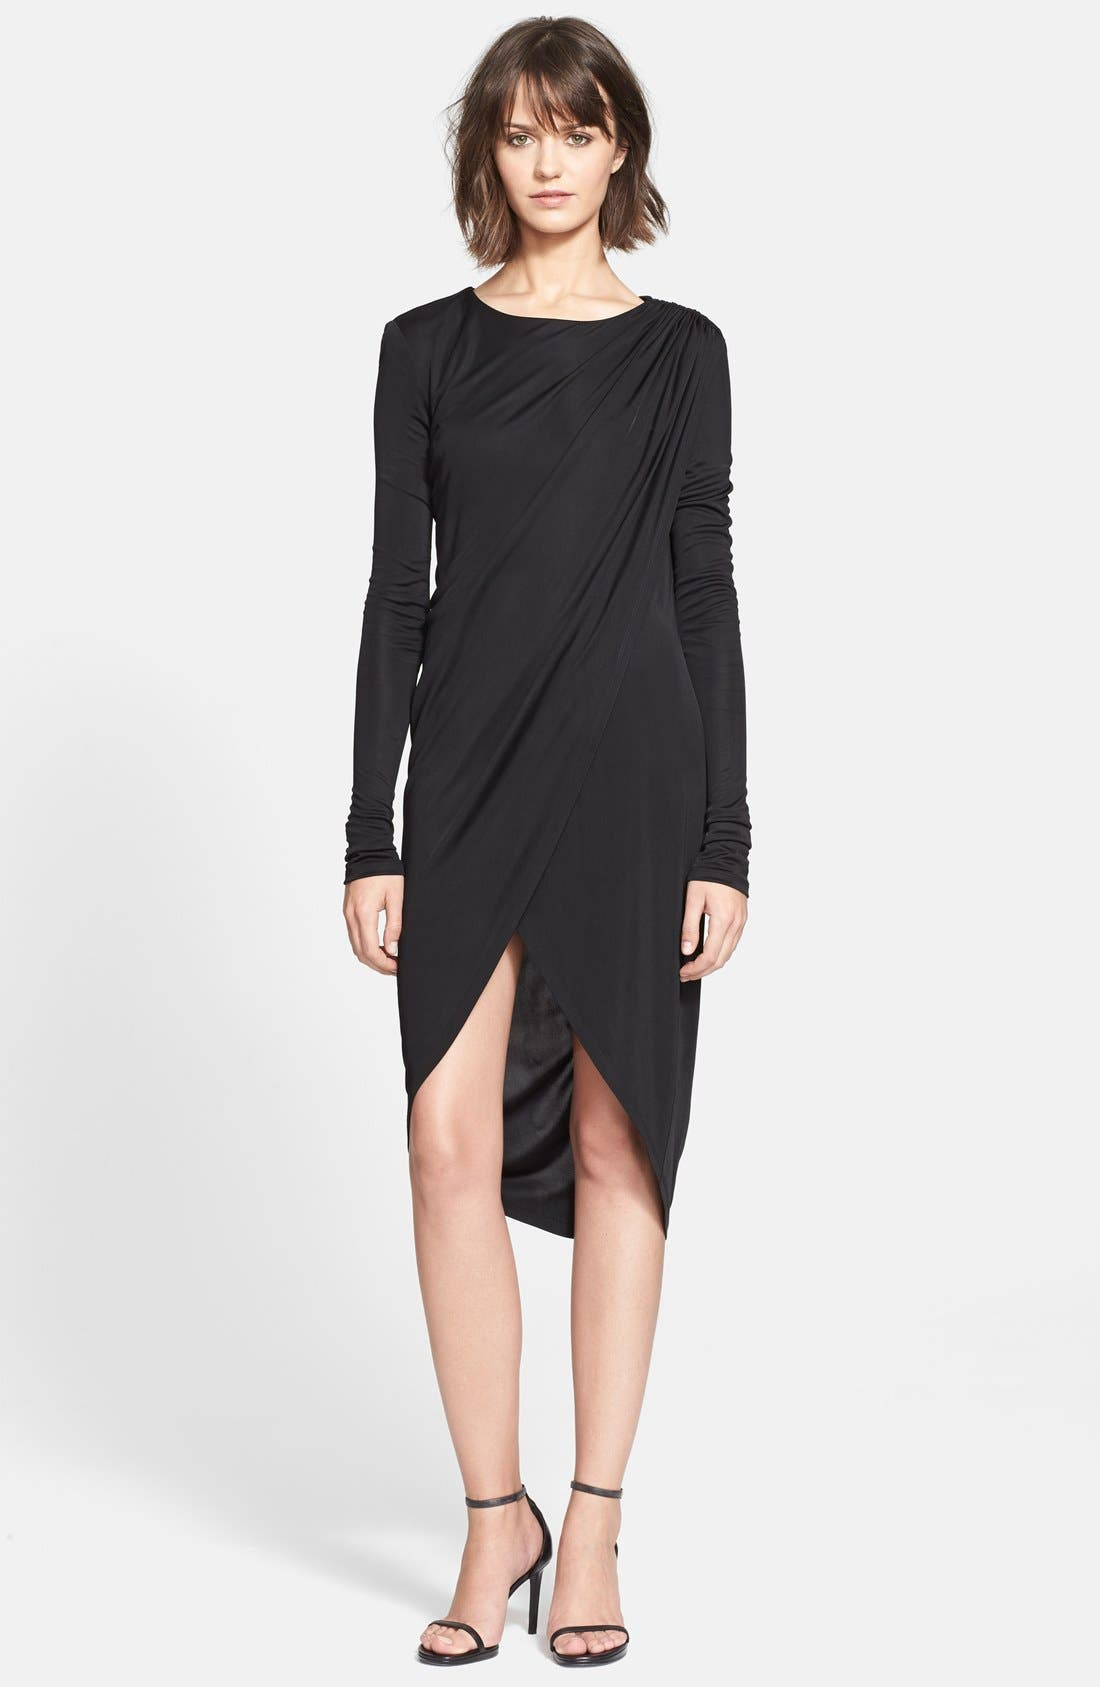 Alternate Image 1 Selected - Rachel Zoe 'Gio' Ruched Asymmetrical Dress